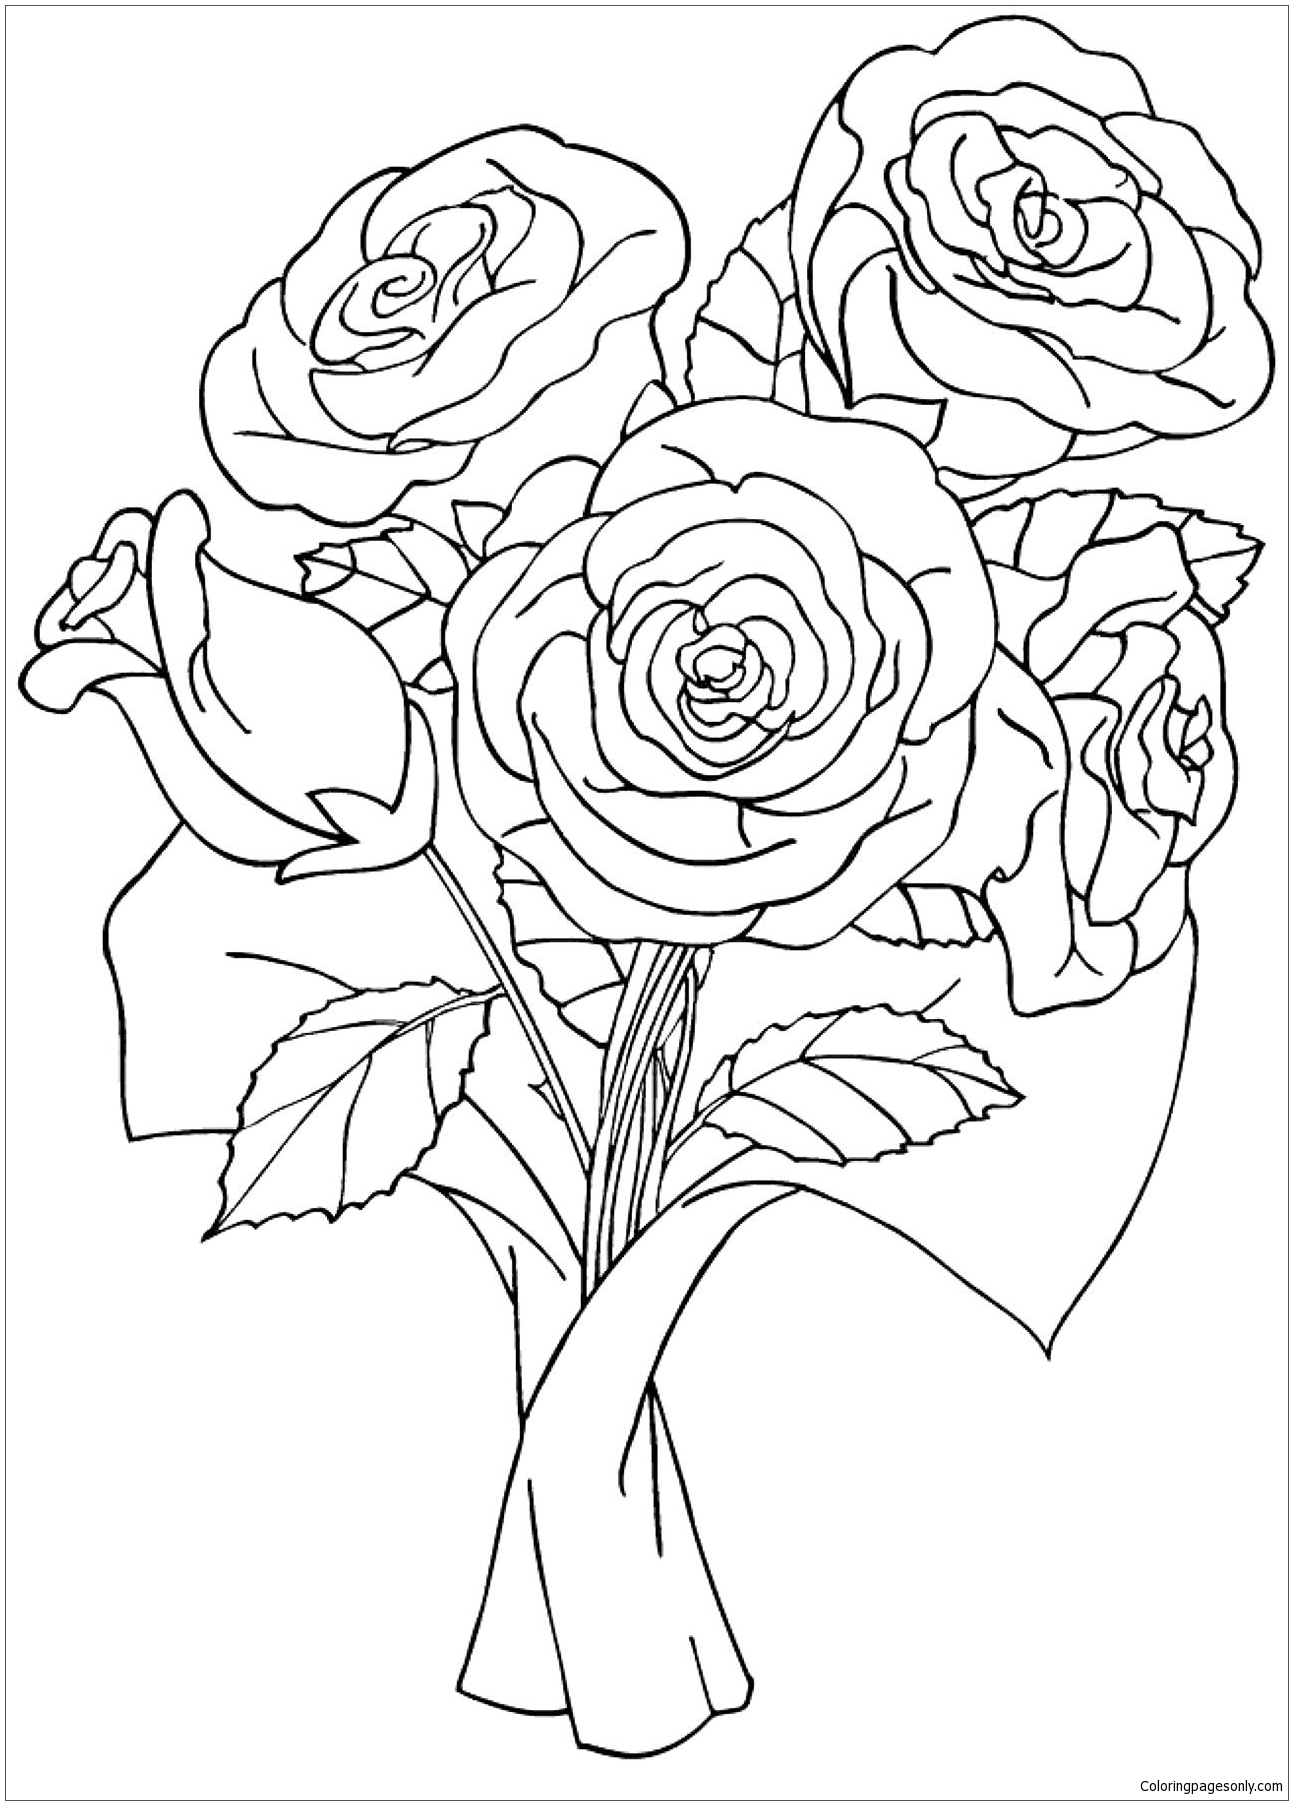 free printable rose coloring pages roses coloring pages to print coloring home rose printable coloring pages free